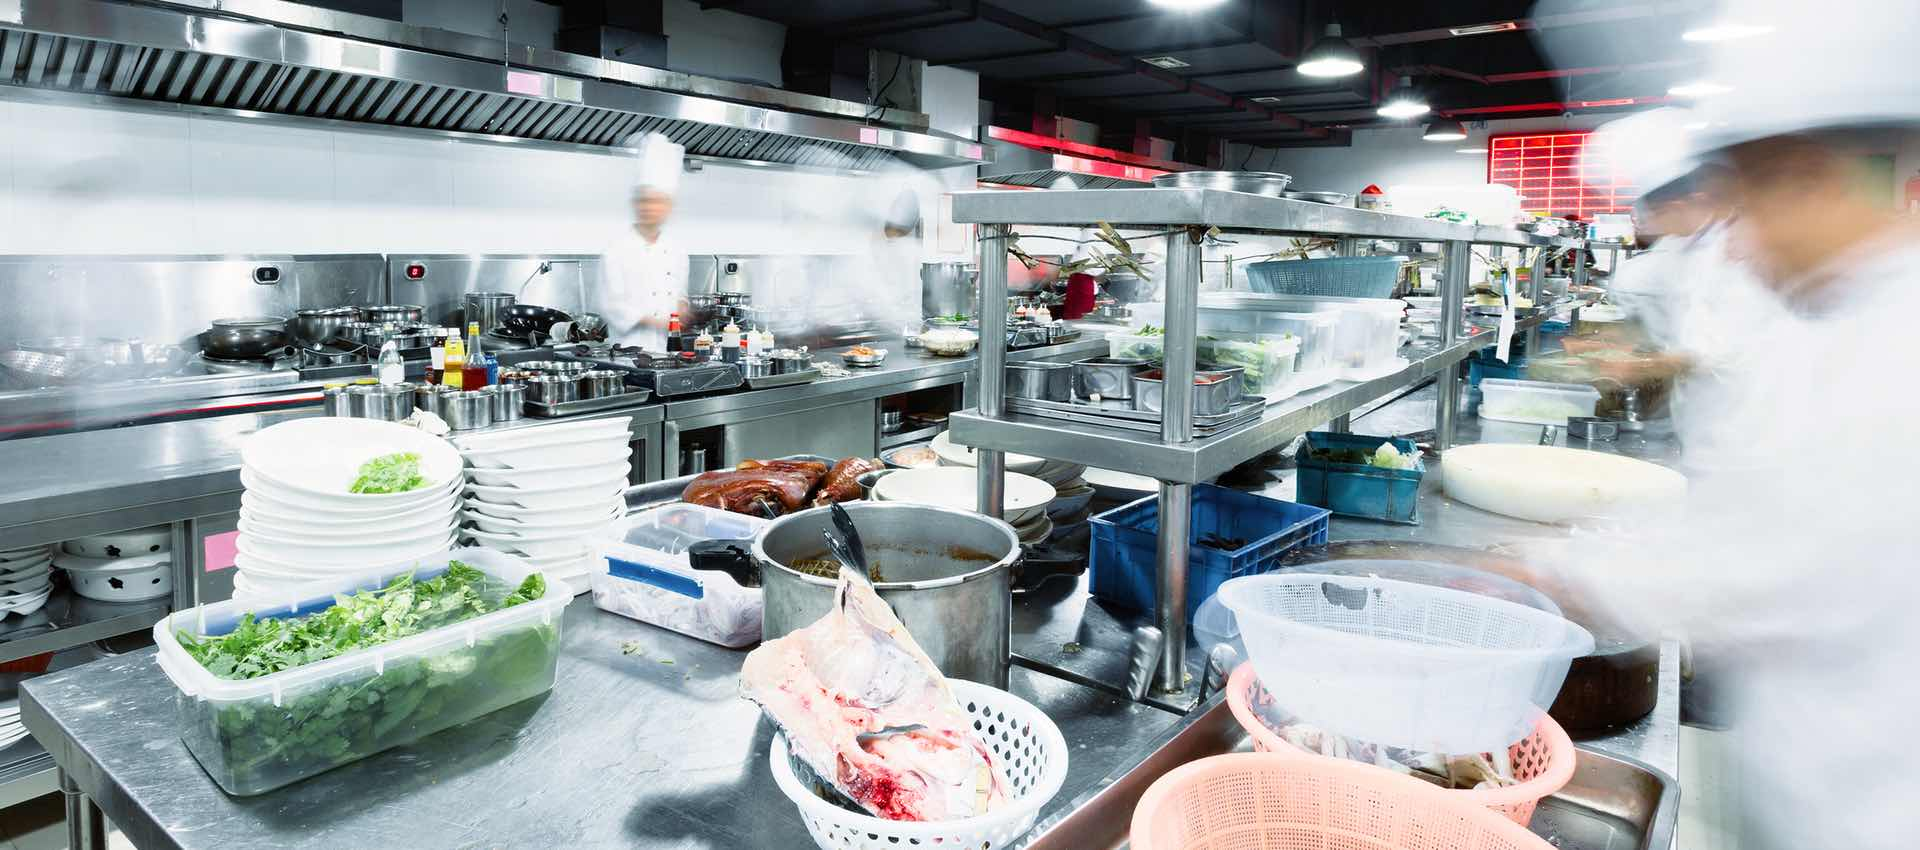 Food preparation in hotel commercial kitchen